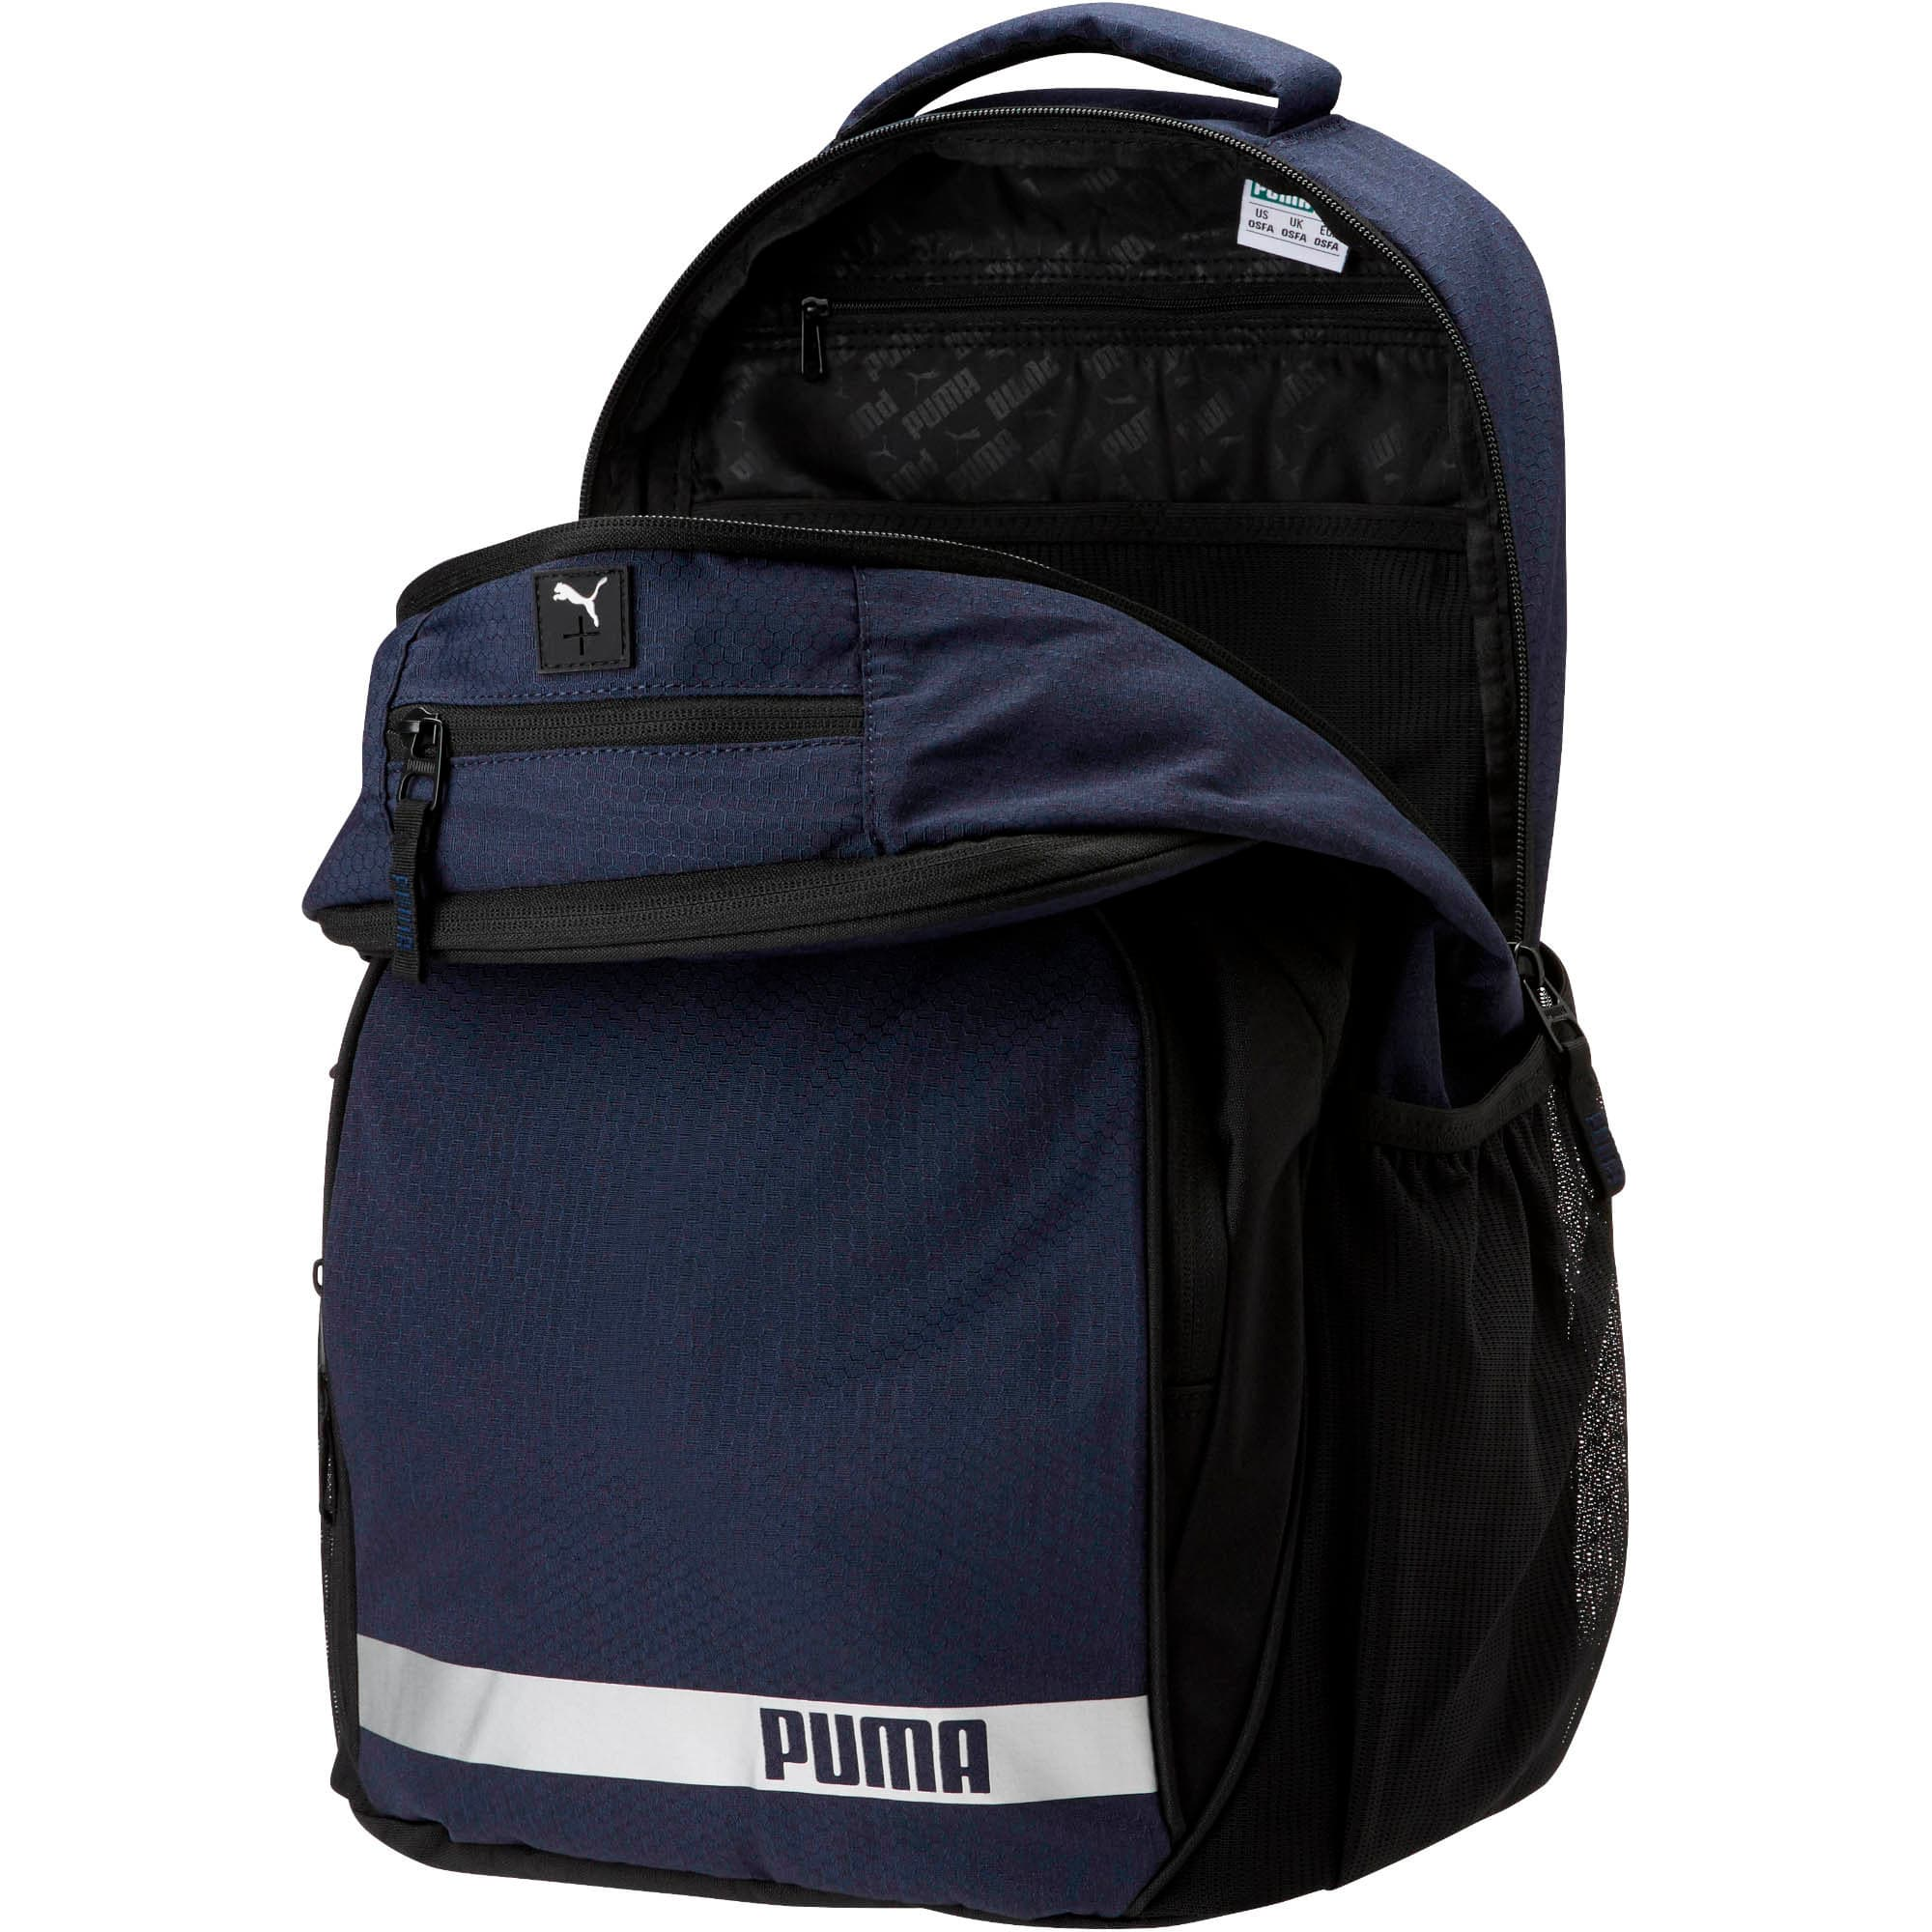 Formation 2.0 Ball Backpack, Navy, large